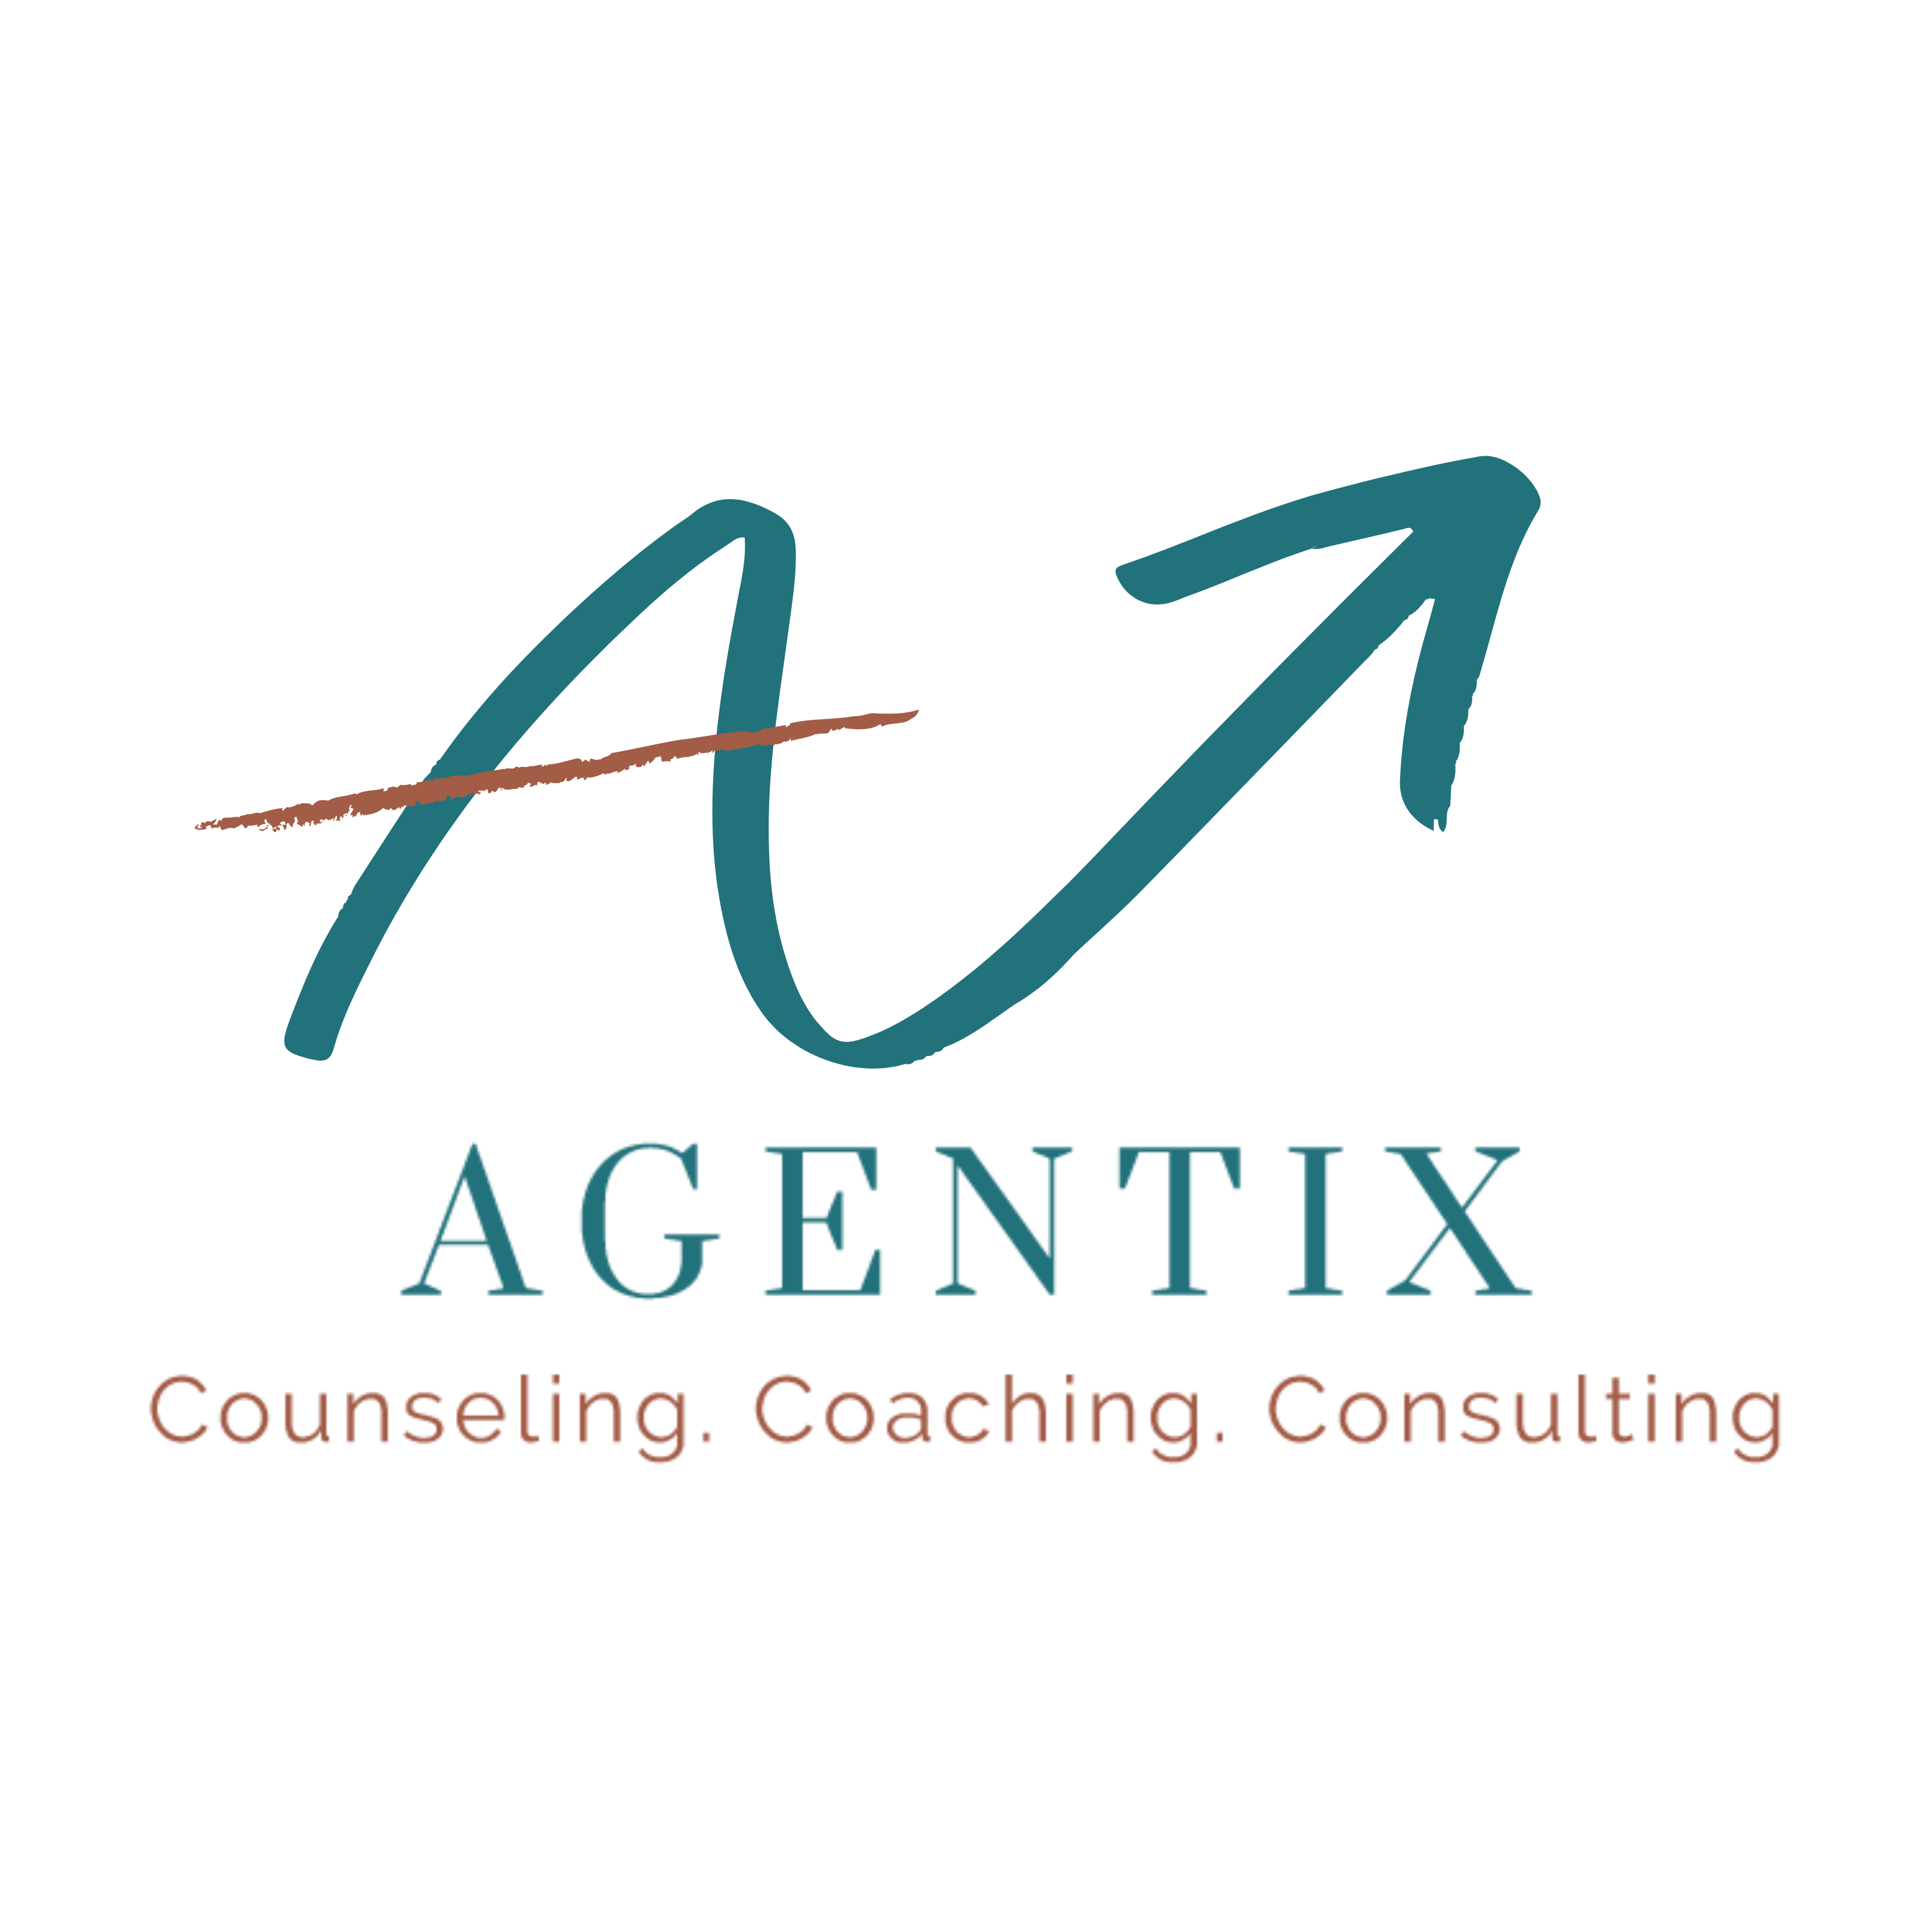 Agentix Counseling, Coaching, & Consulting LLC